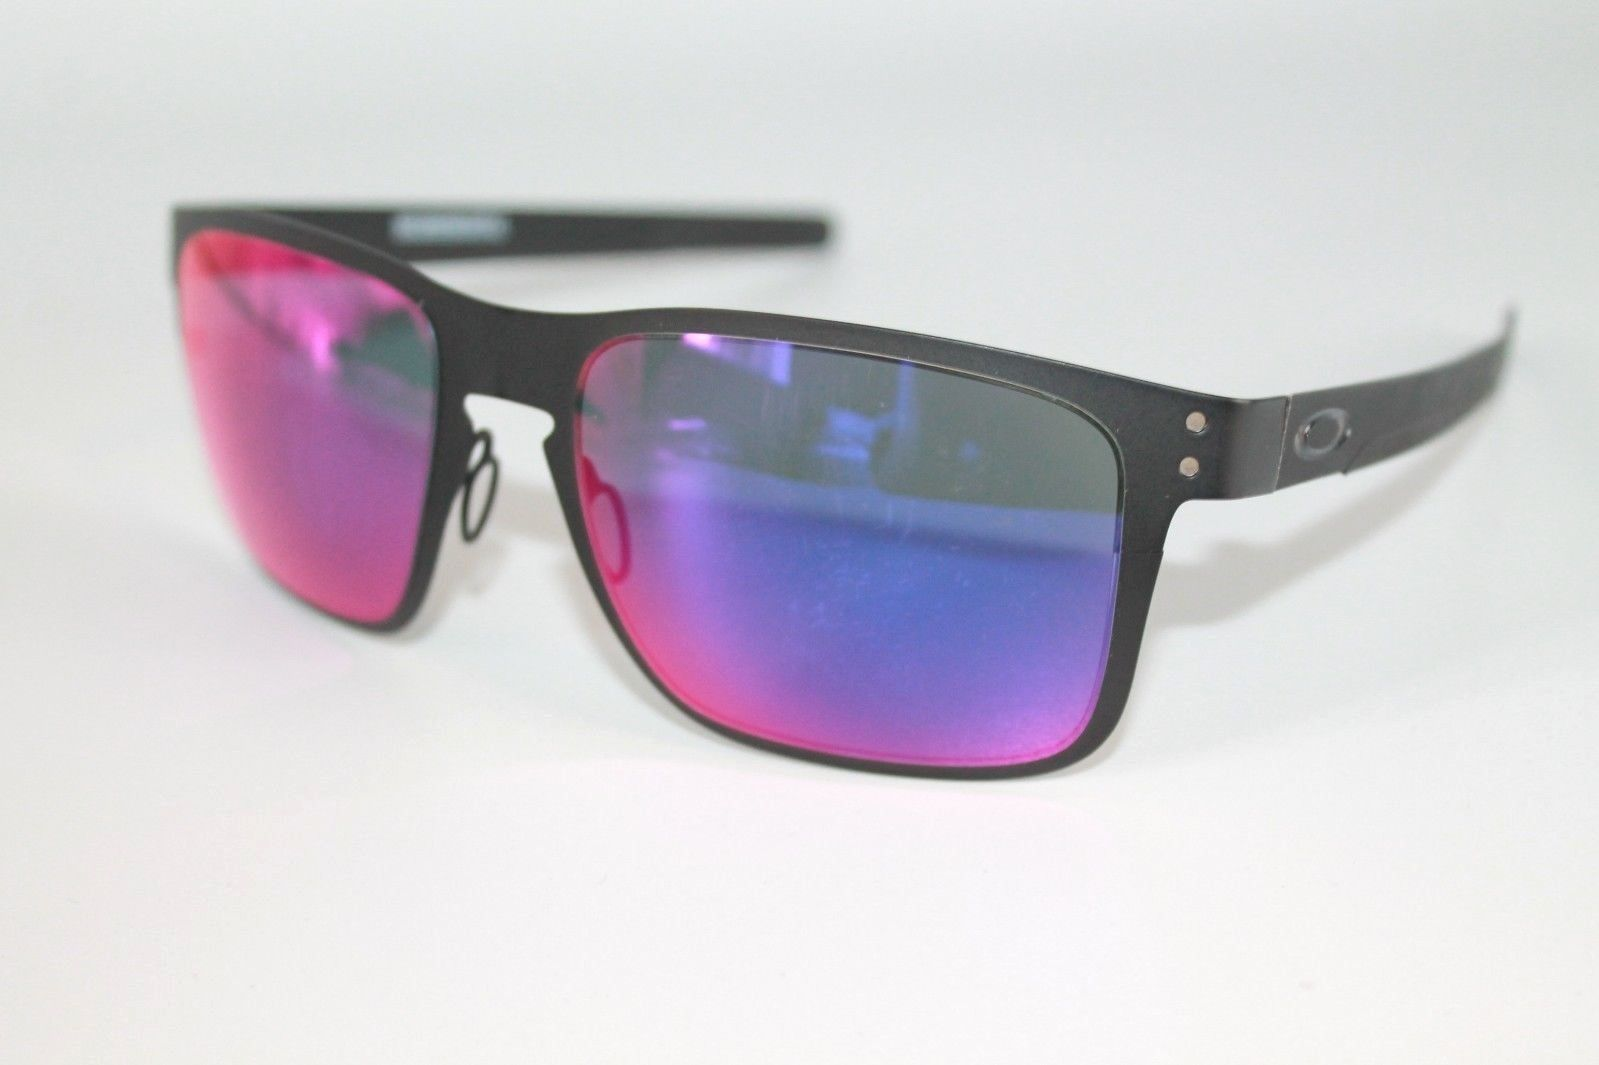 5640f988ac S l1600. S l1600. Previous. Oakley Holbrook Metal Sunglasses OO4123-02 Matte  Black W  Positive Red Iridium